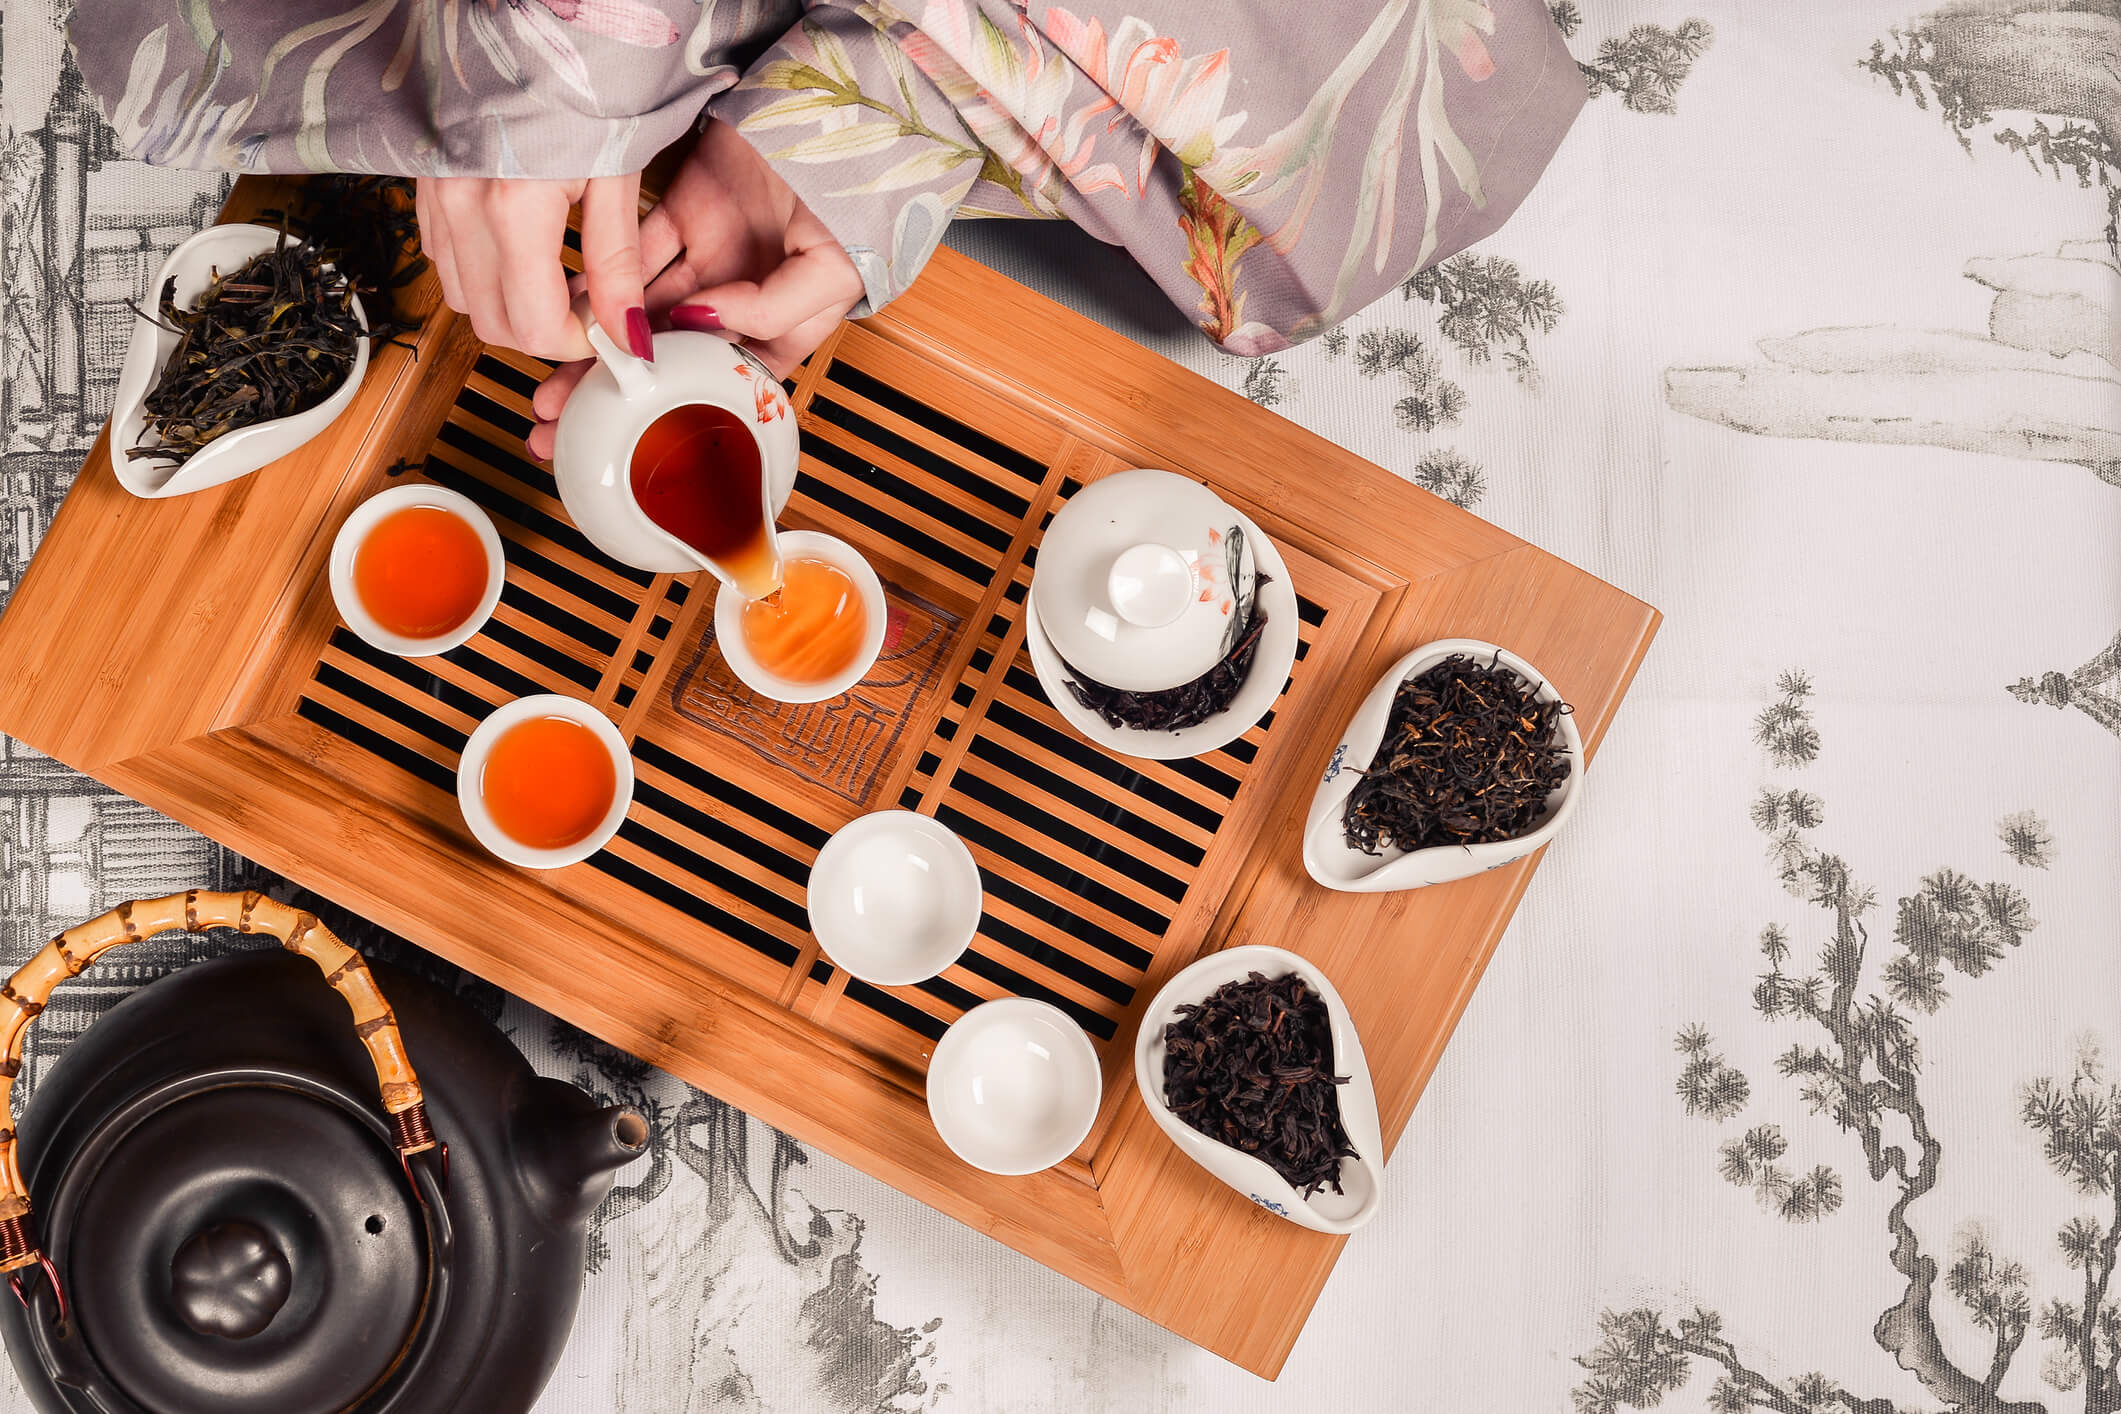 Chinese tea ceremony tray - chinese customs